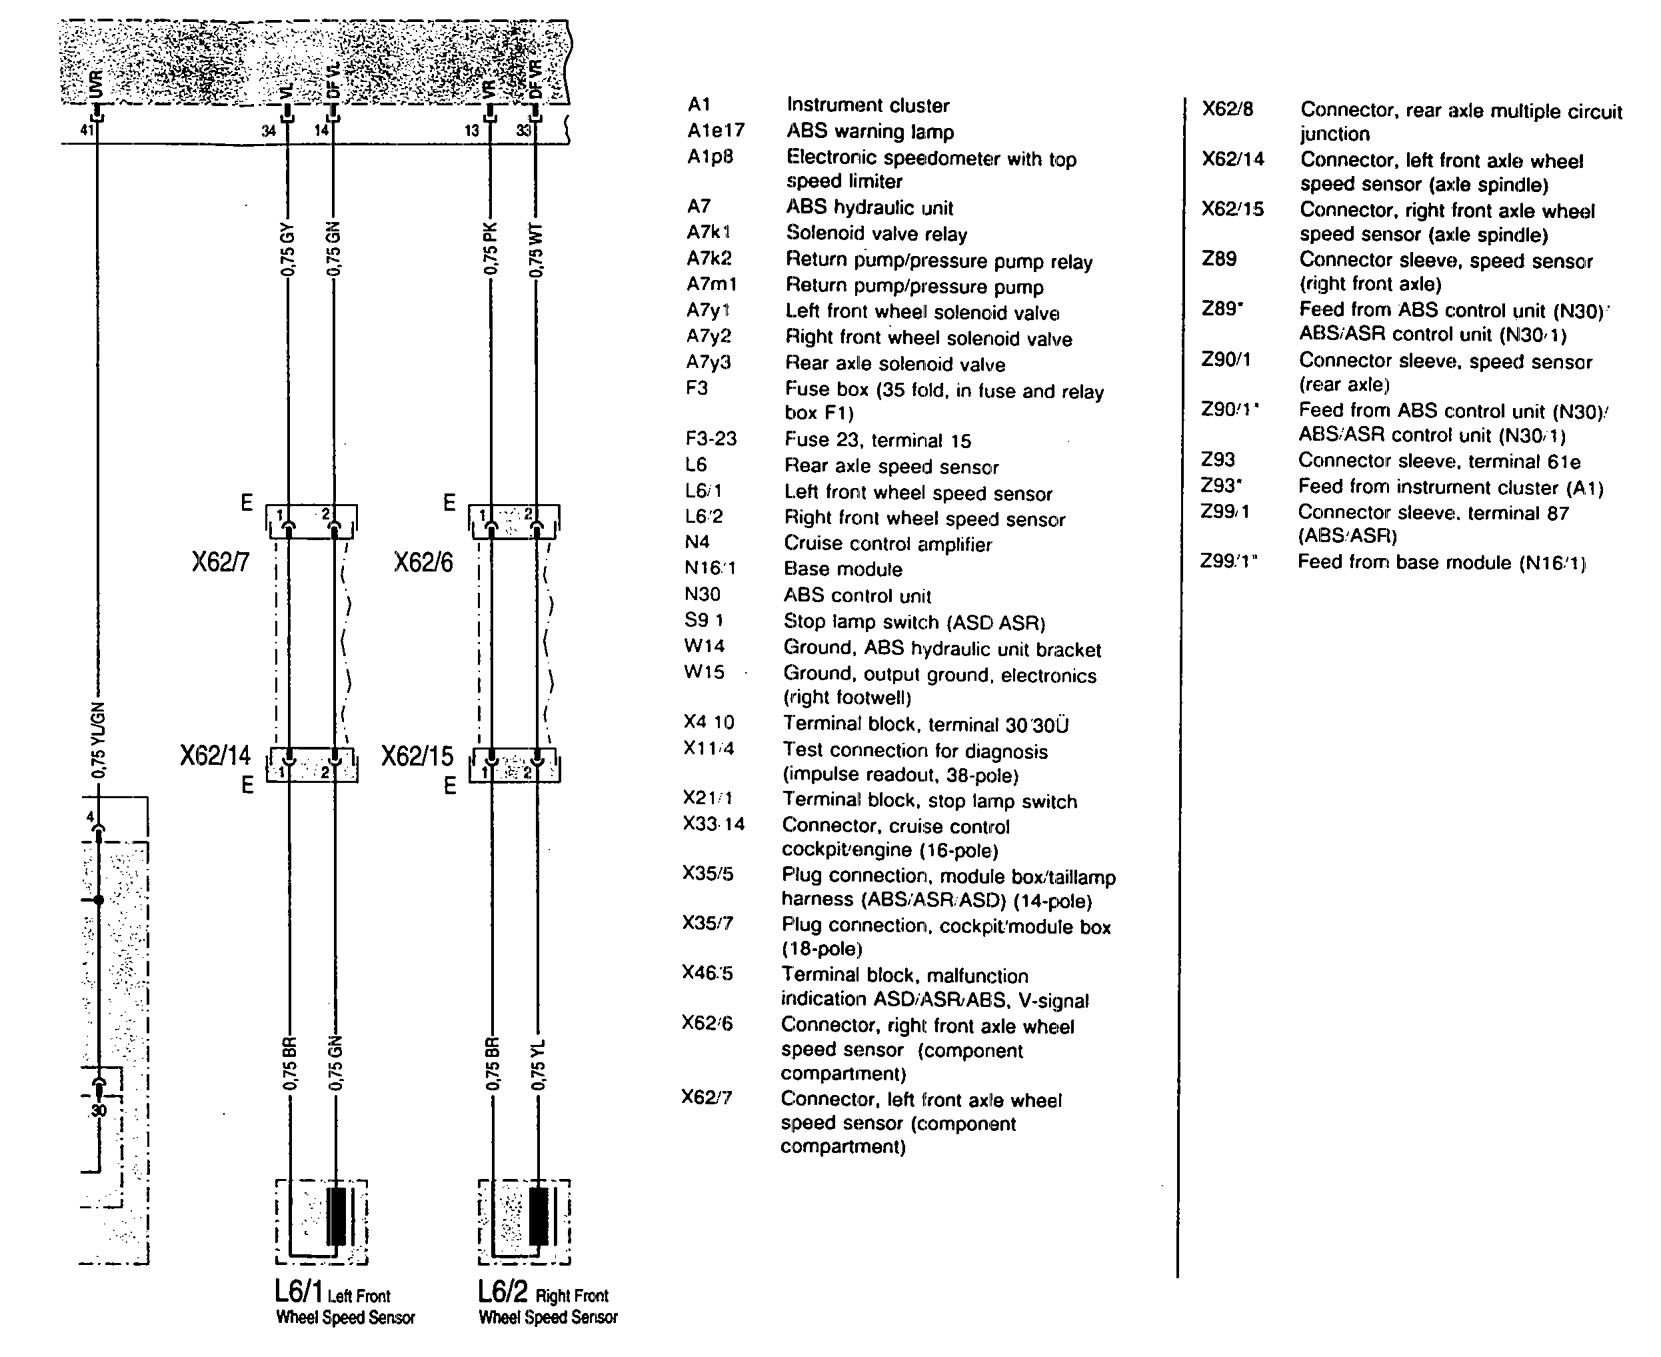 2001 Mercede Benz S430 Fuse Diagram